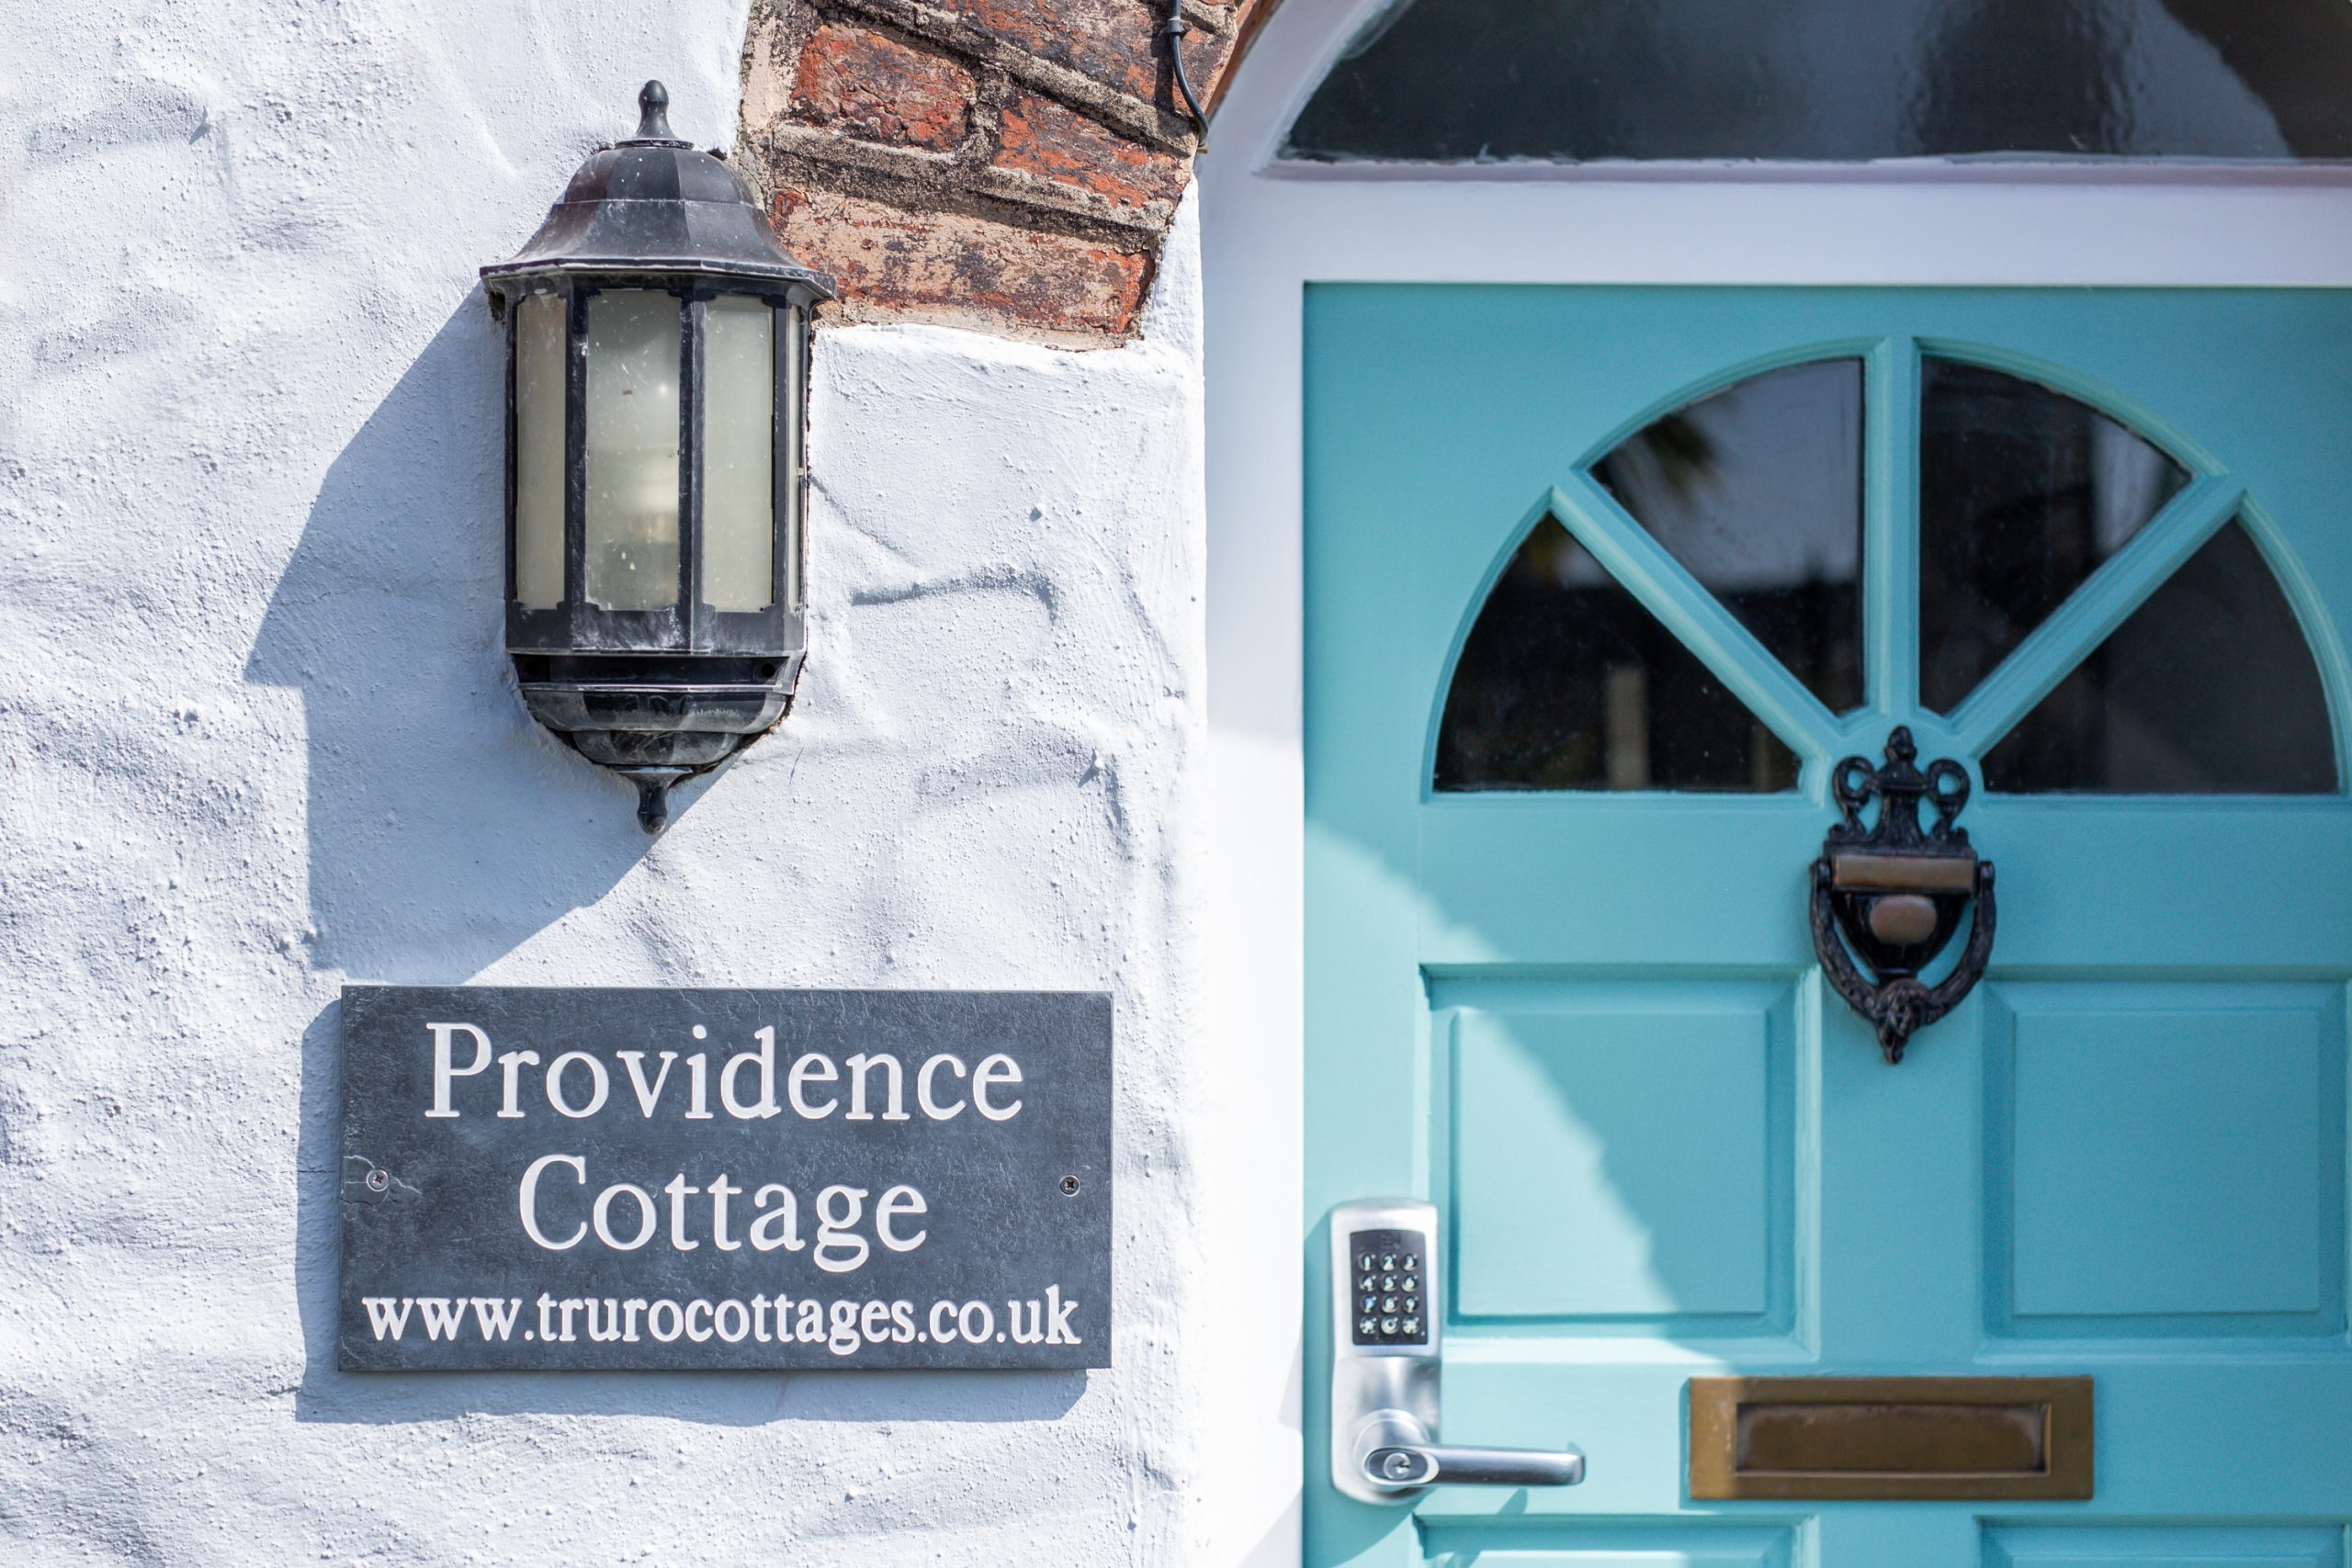 Providence Cottage Slate sign & front door